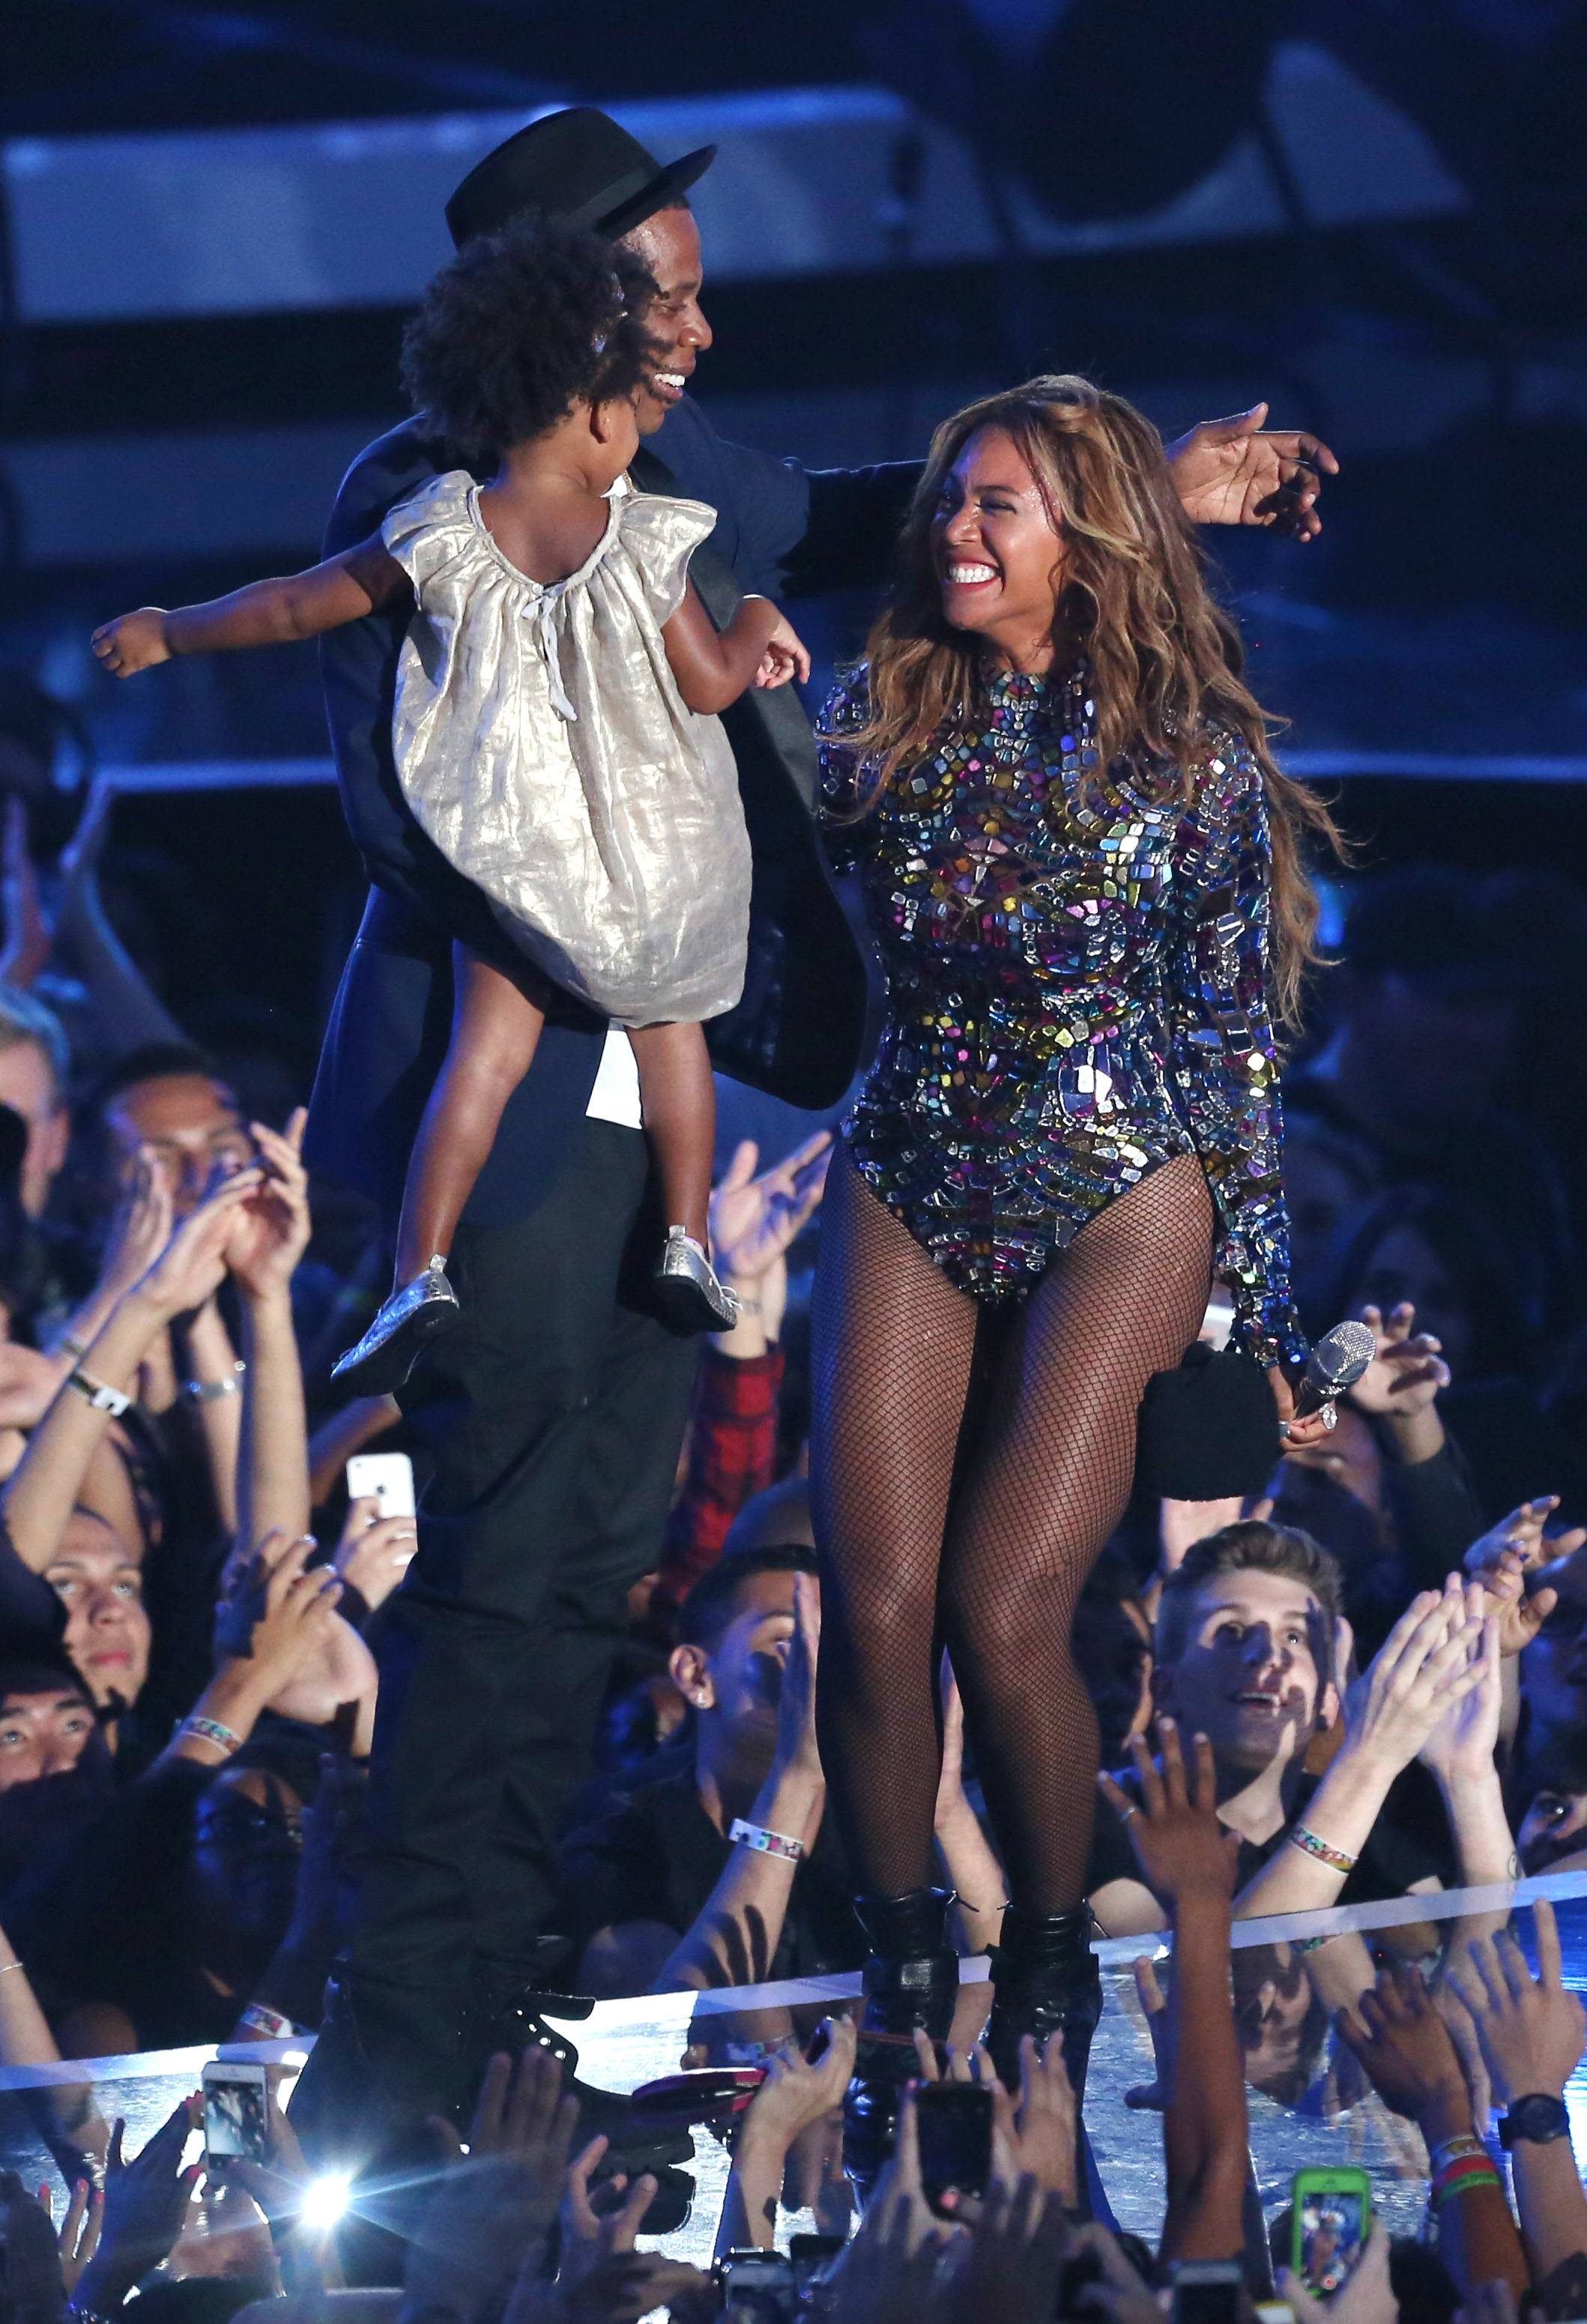 Beyonce accepts the Video Vanguard Award at the MTV Video Music Awards. Looking on from left is Blue Ivy and Jay-Z.